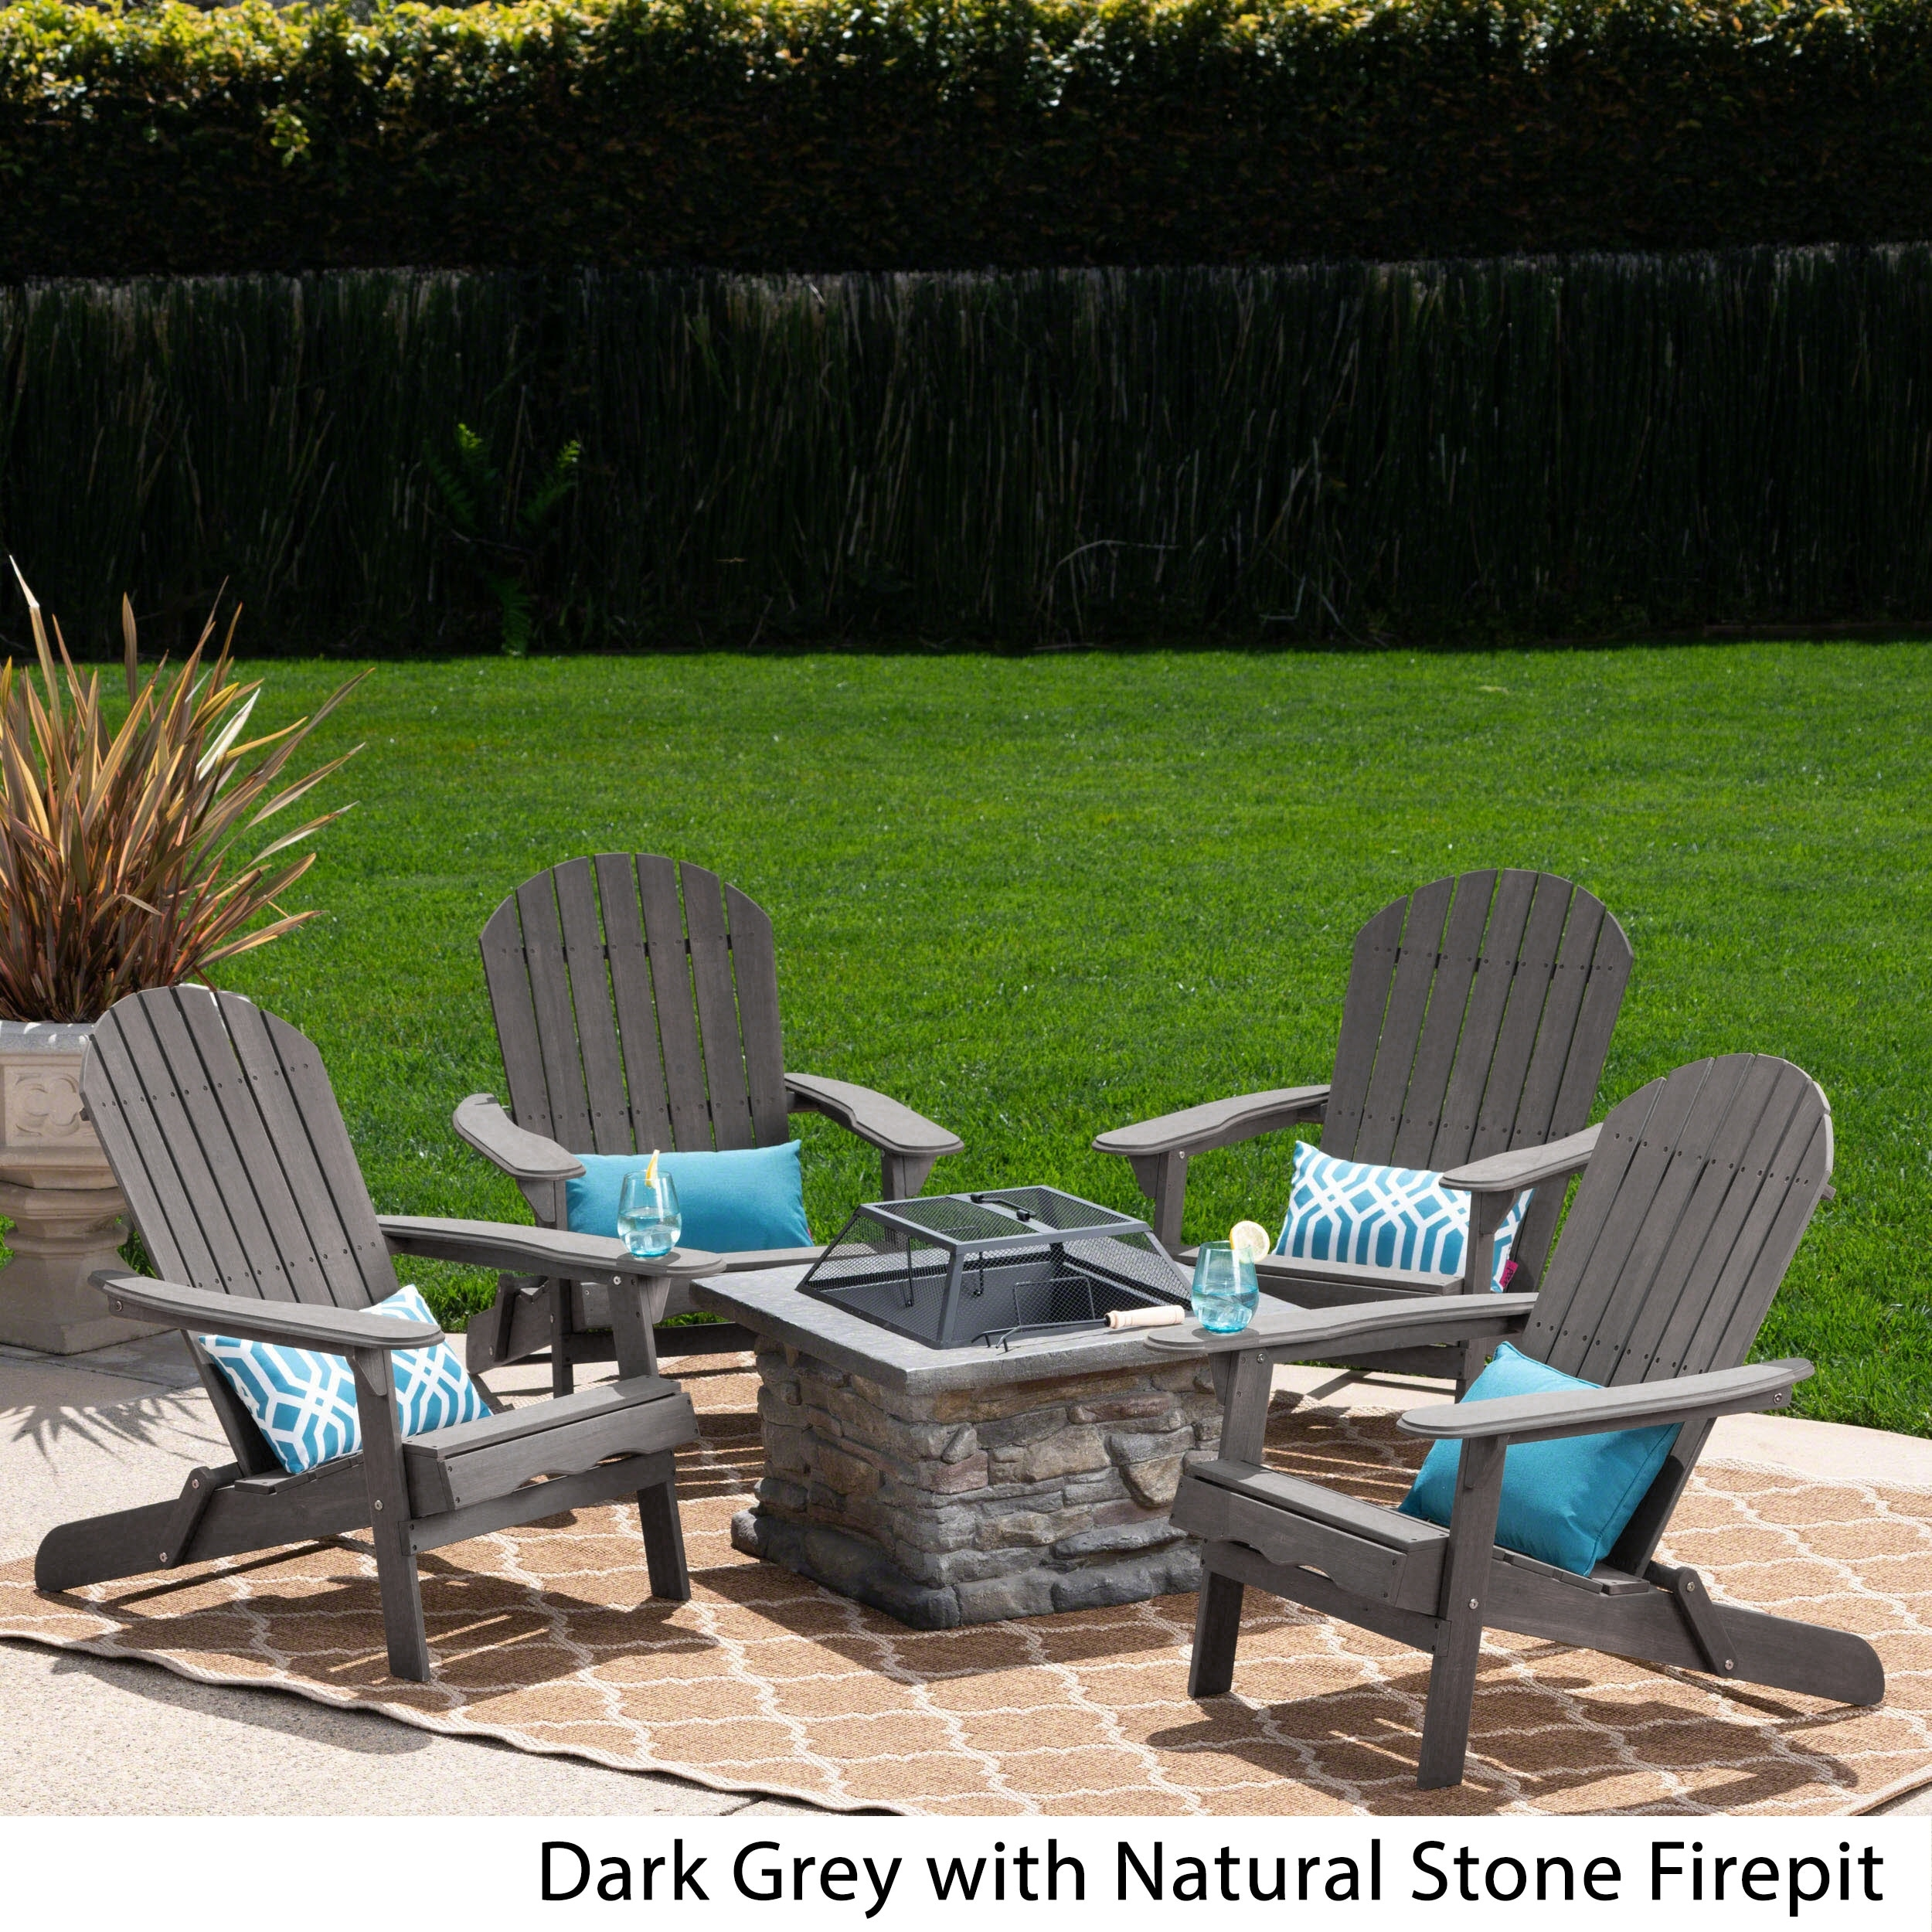 Shop Black Friday Deals On Marrion Outdoor 5 Piece Adirondack Chair Set With Fire Pit By Christopher Knight Home Overstock 21135655